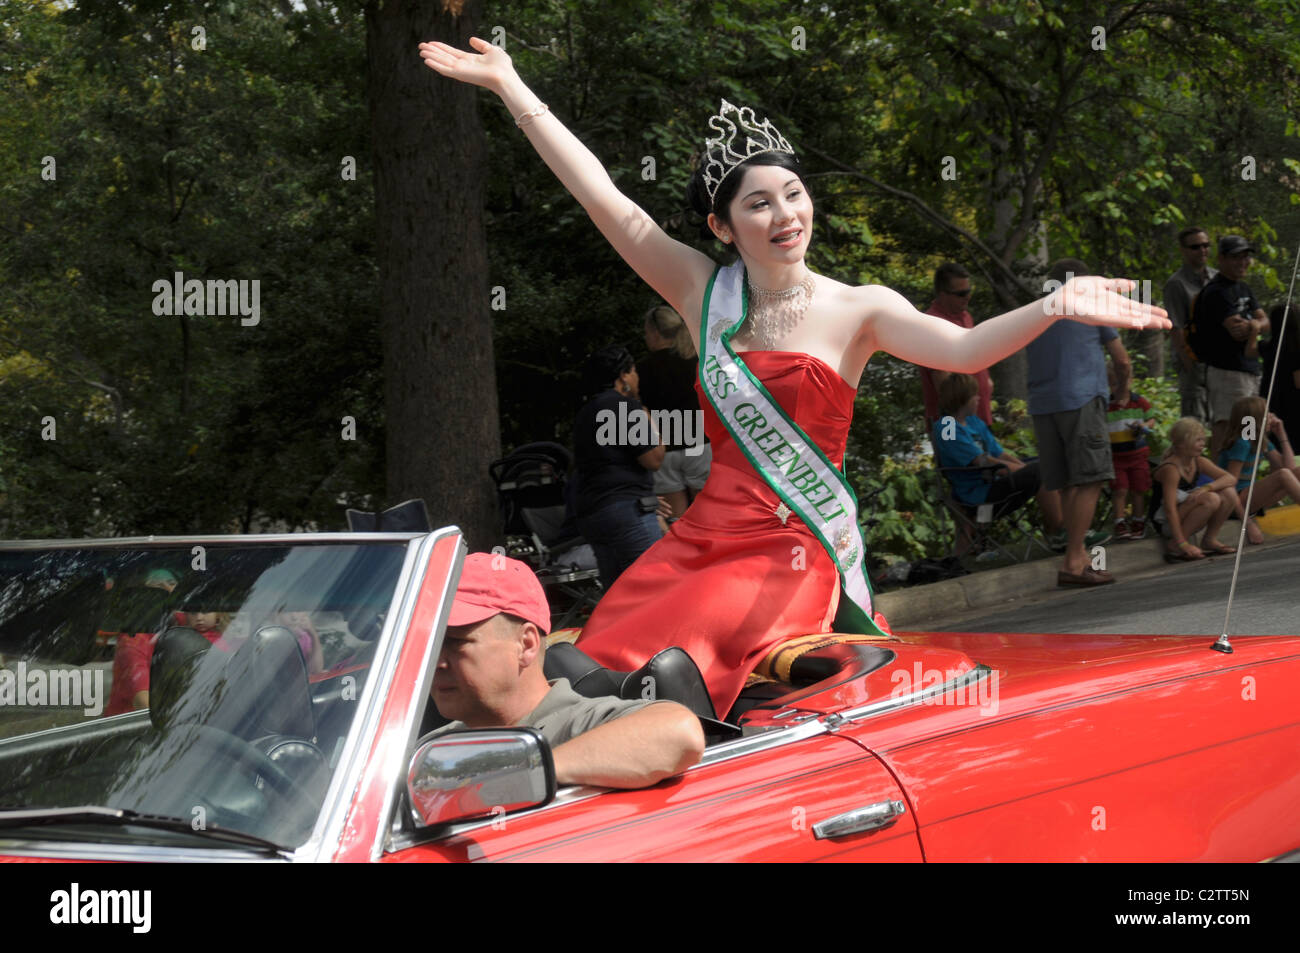 Miss Greenbelt waves during the Labor Day parade in Greenbelt, Marylandt - Stock Image